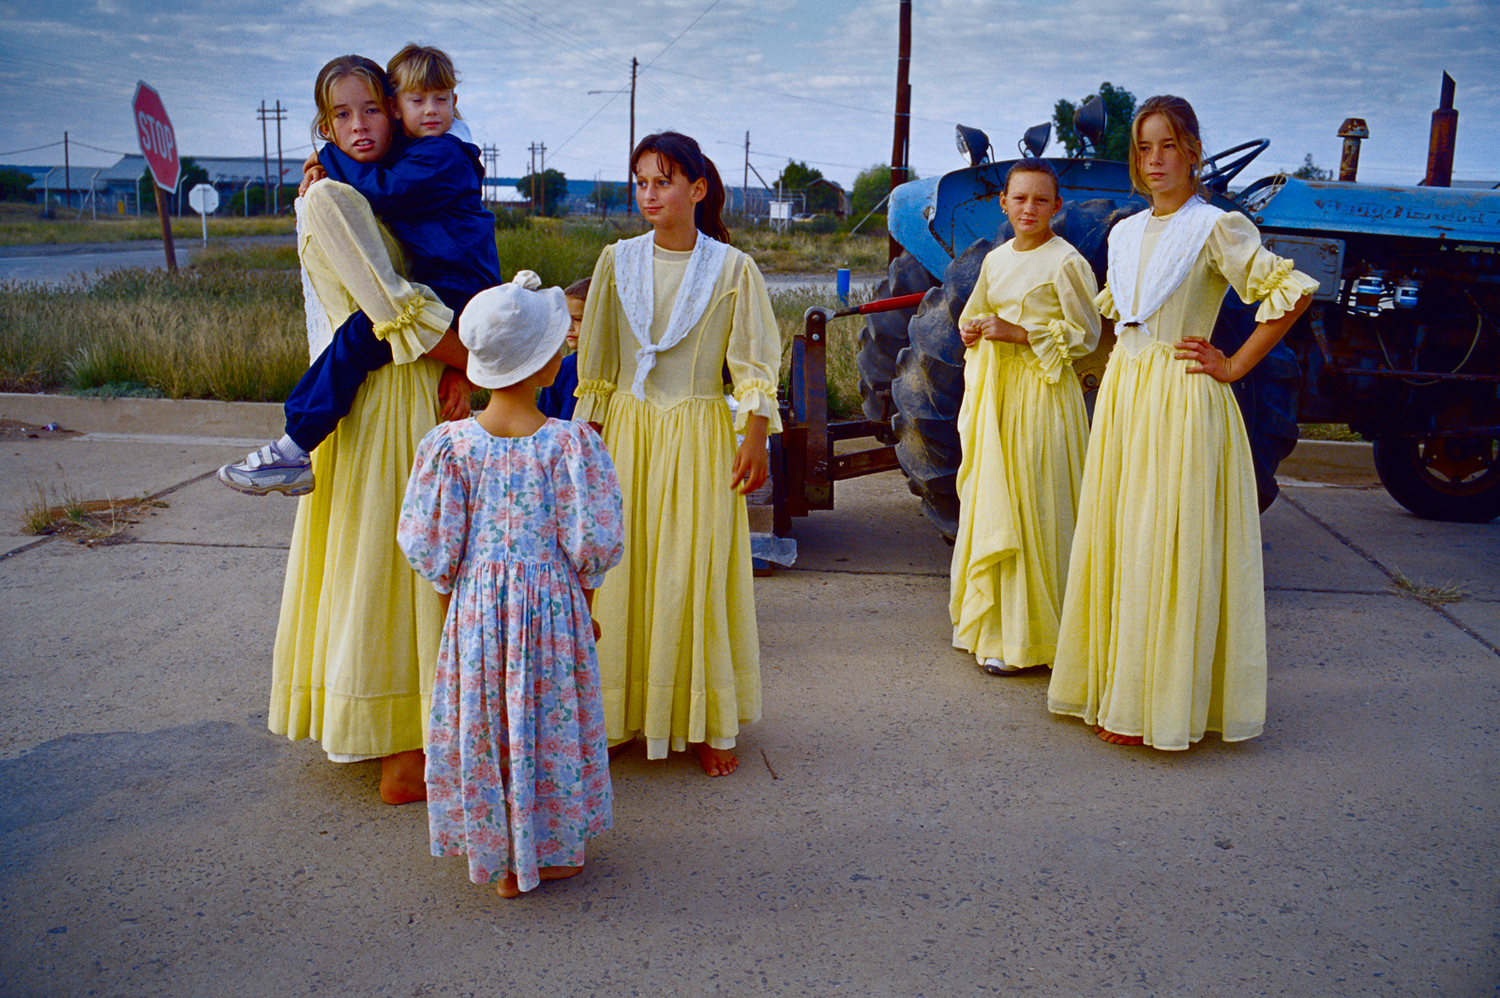 Afrikaner children dressed in traditional clothing at a farm show in Orania, April 2004. The annual, three-day event attracts visitors from neighboring villages and cities.